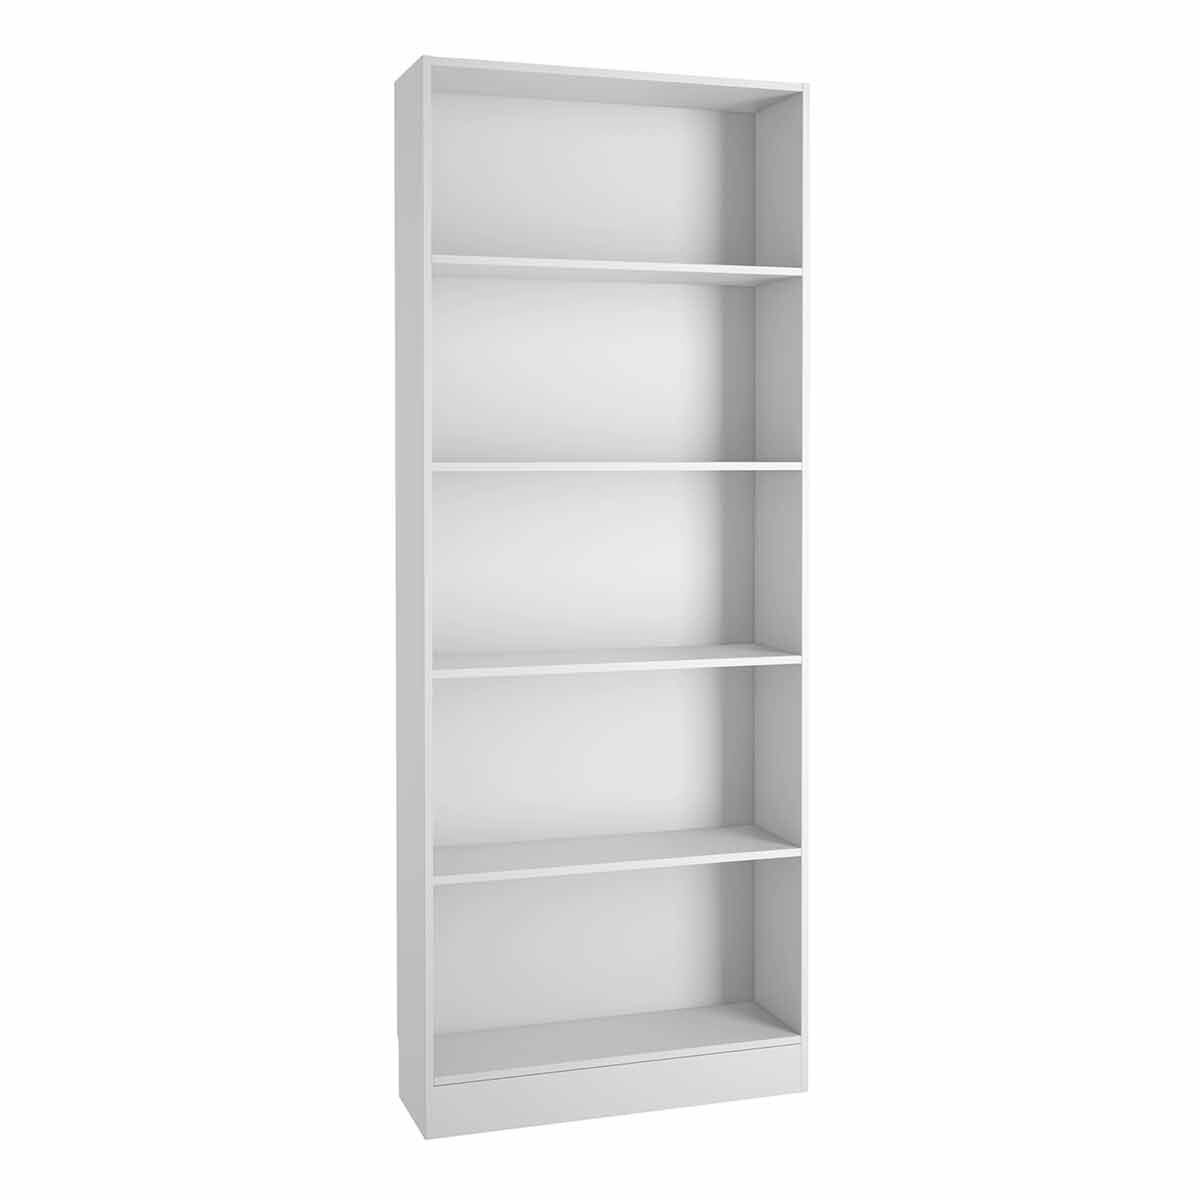 Basic Tall Wide Bookcase with 4 Shelves White